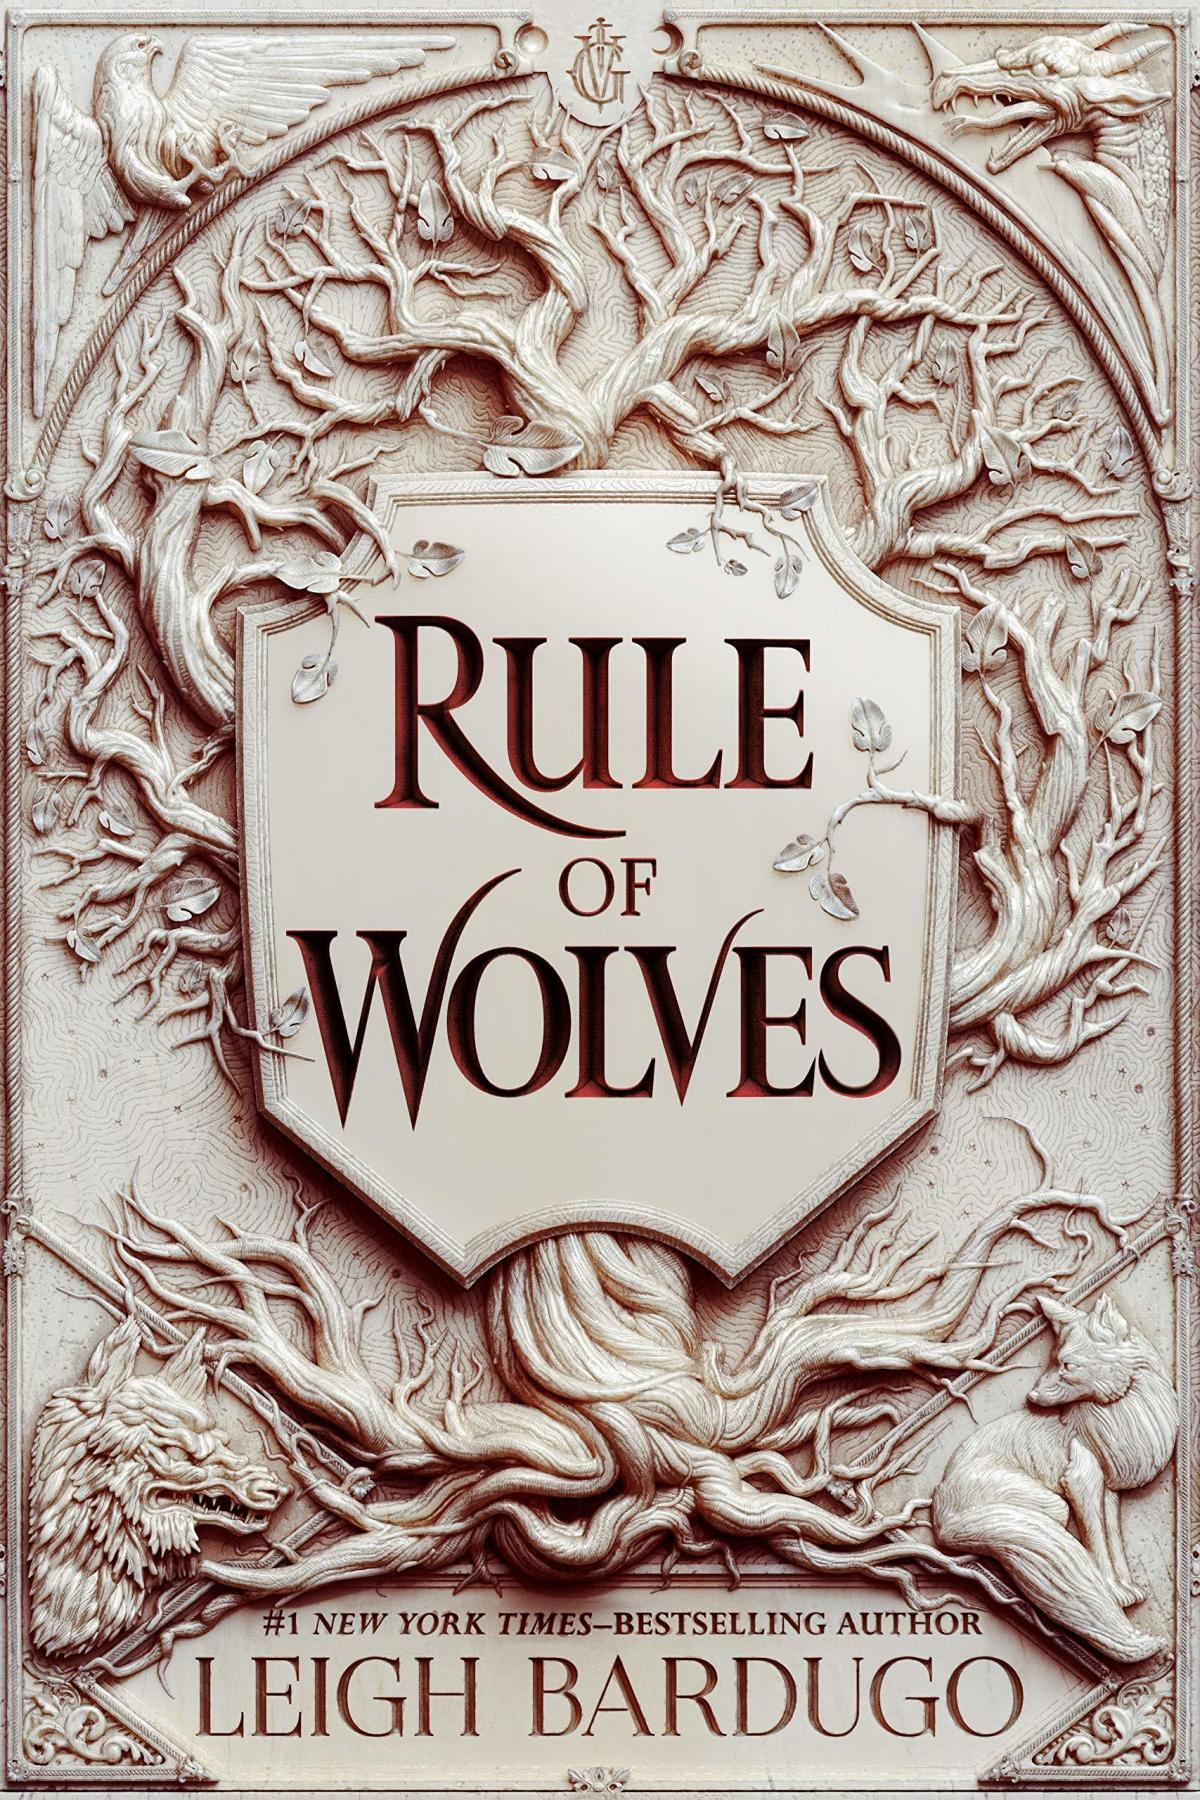 Rule of Wolves, by Leigh Bardugo